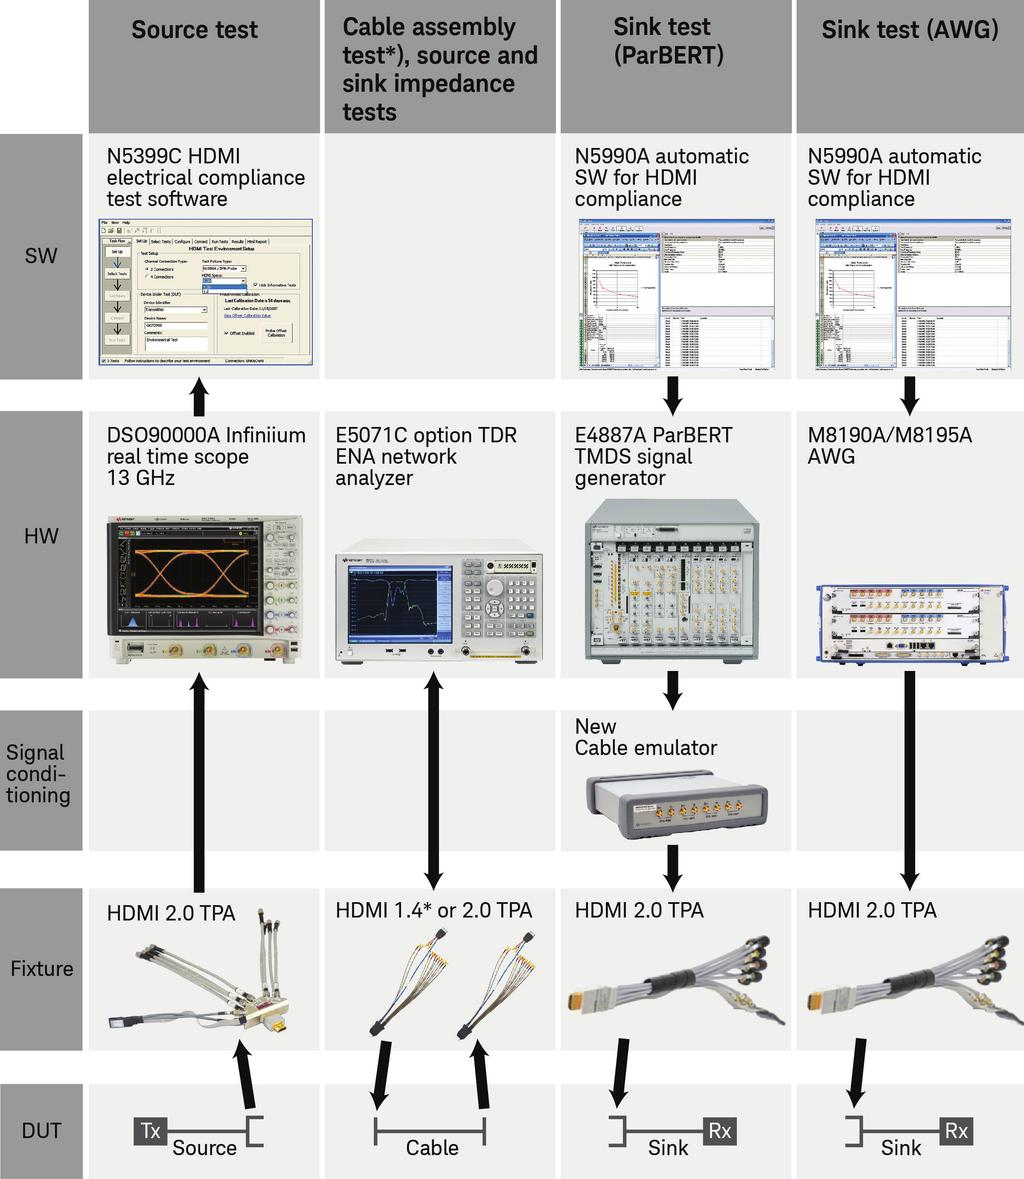 03 Keysight HDMI and DisplayPort Design and Test A Better Way - Brochure Key tasks Applying expertise HDMI and DisplayPort characterization can be segmented into multiple areas: source design and